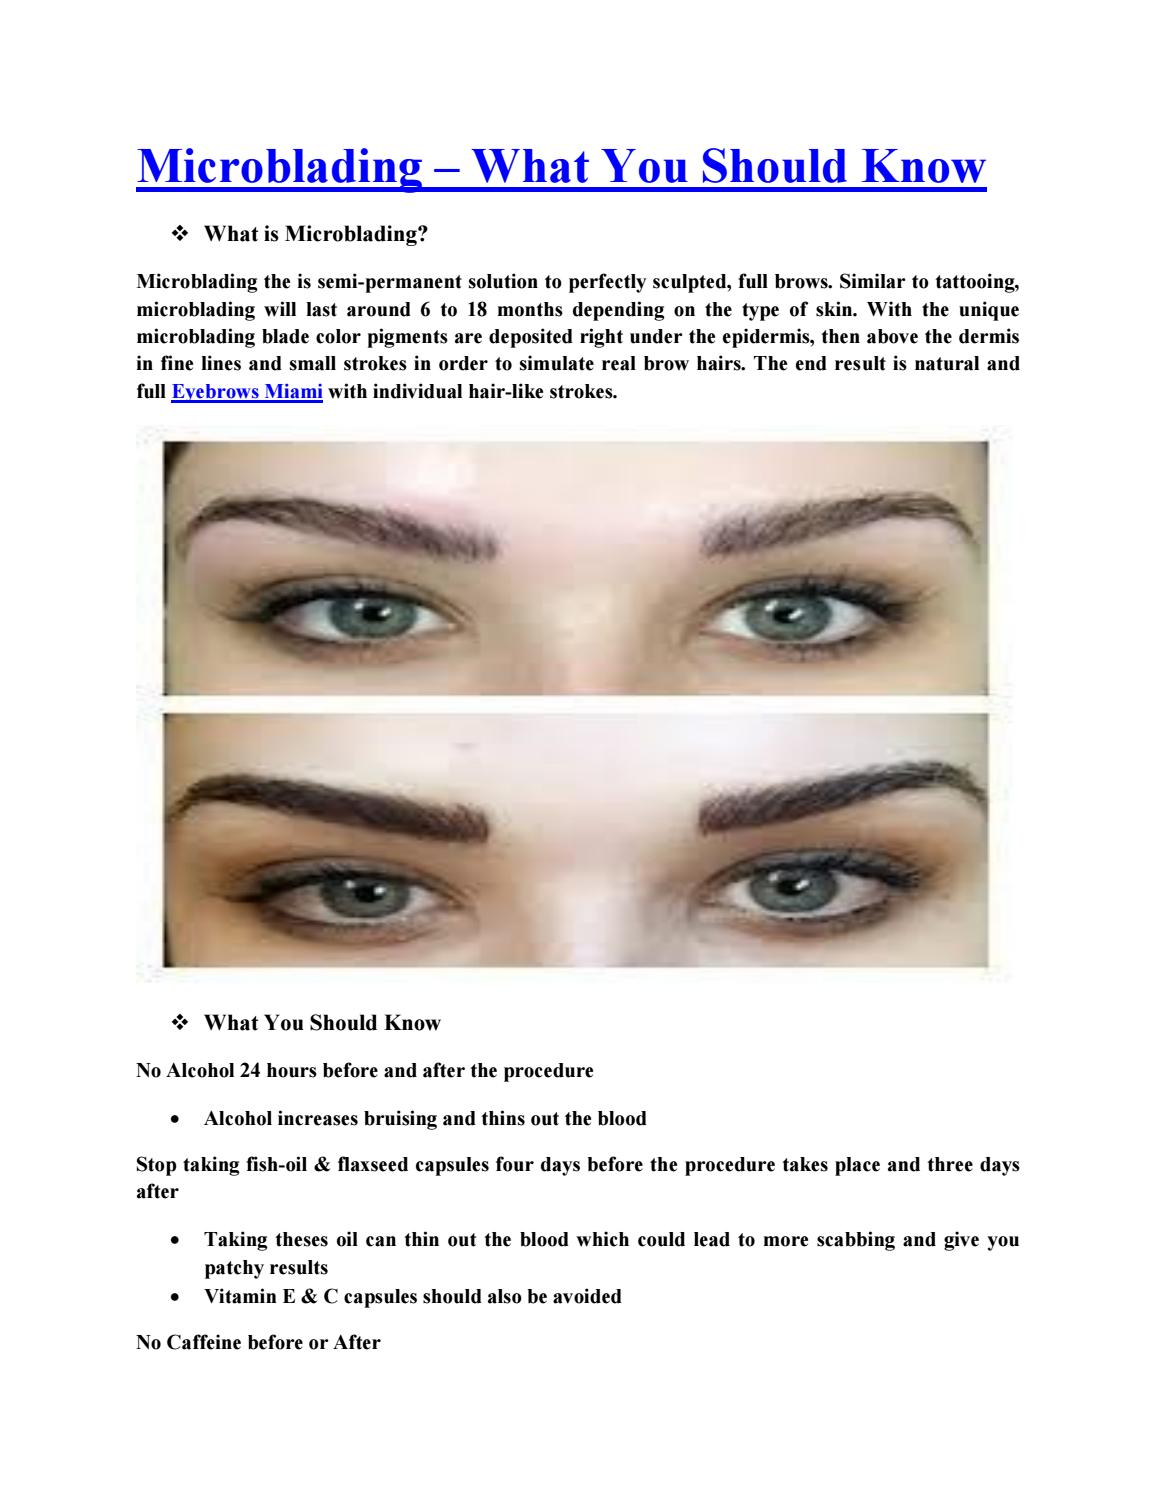 8698c8e5e21c9 Microblading – What You Should Know by Esthesio Clinic by Sevmylook Miami  Store - issuu